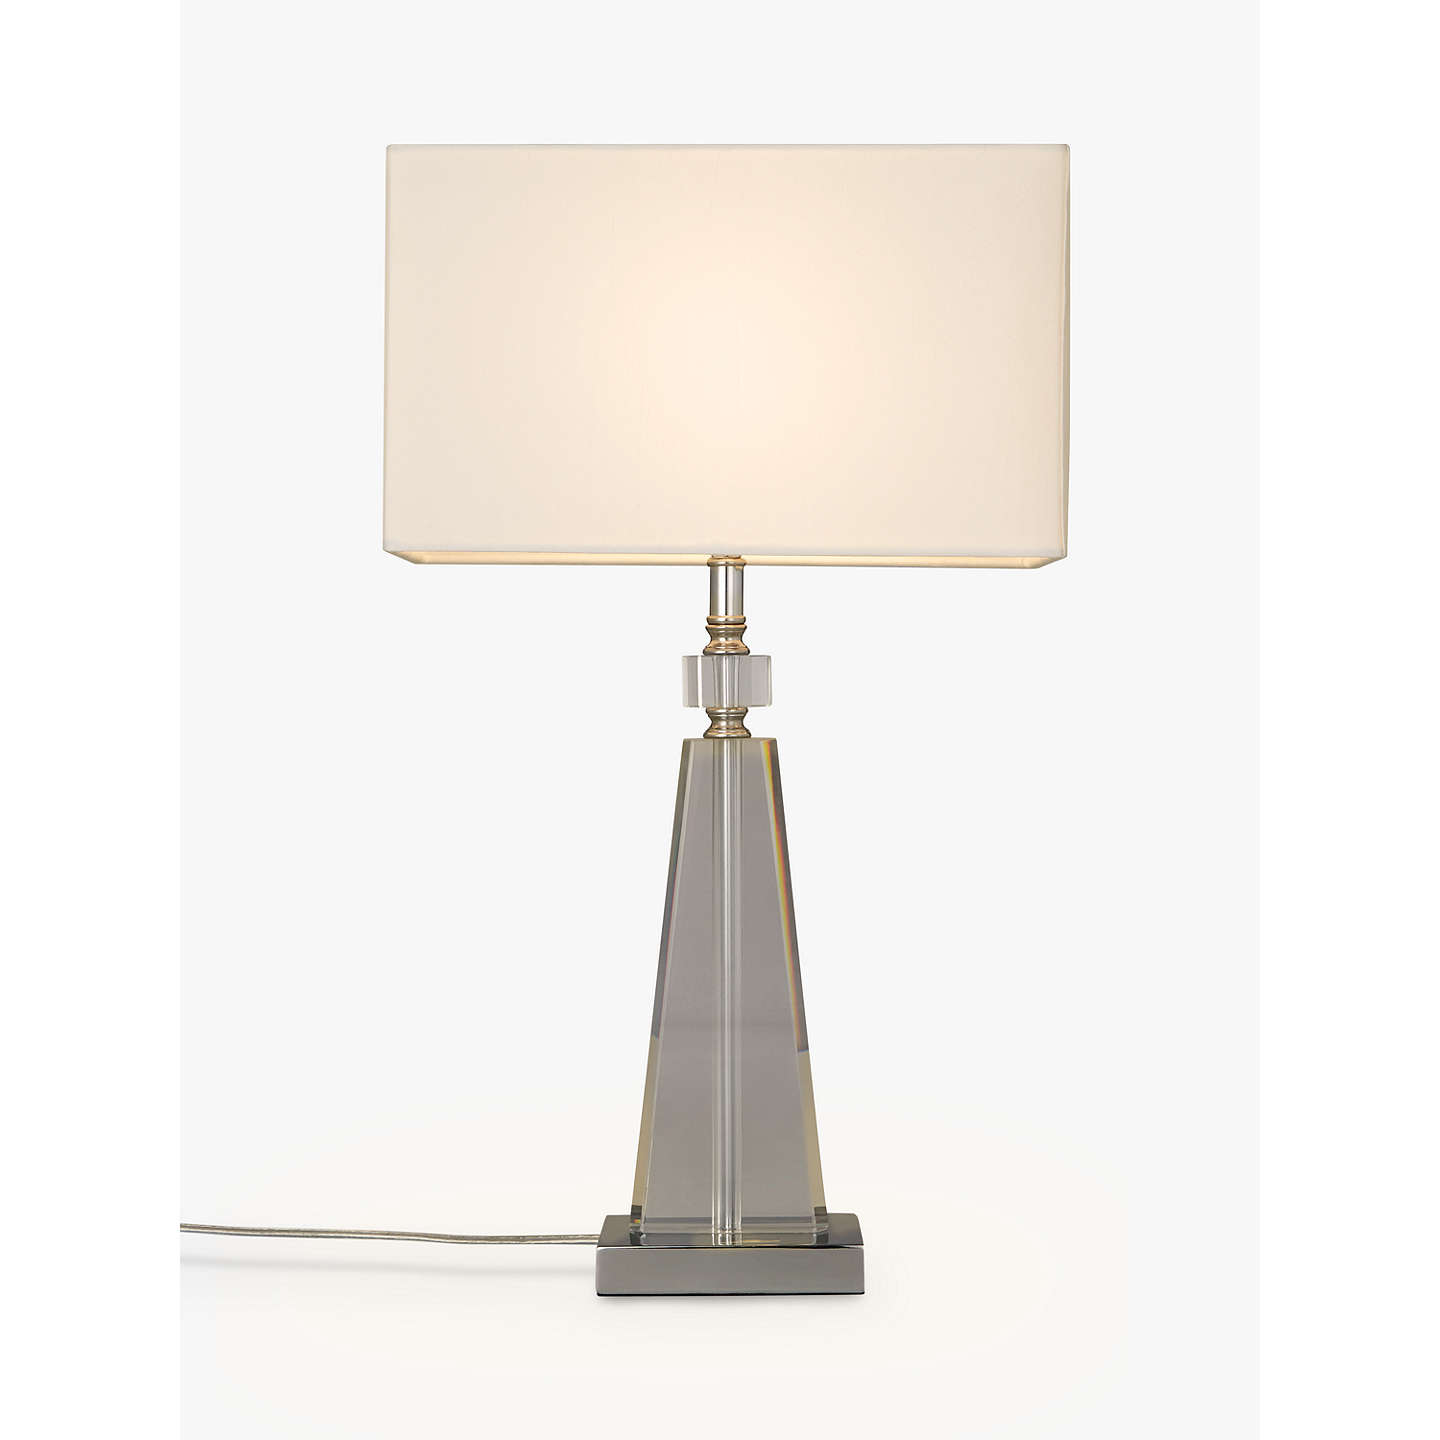 john lewis trisha triangle glass table lamp clear at john lewis